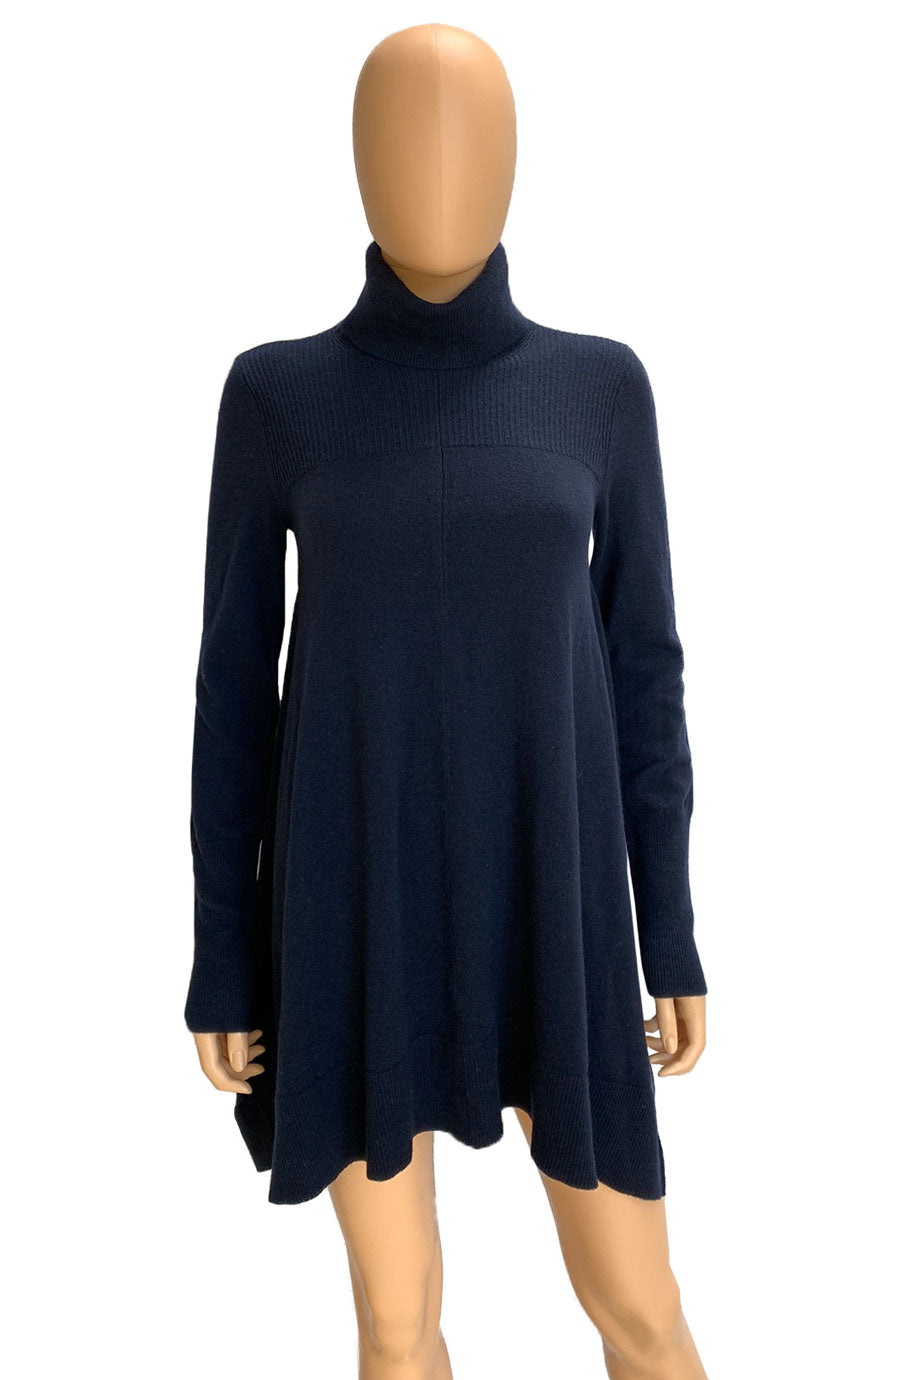 Donna Karan Casual Luxe Navy Blue Tunic Turtleneck Sweater / Sz P